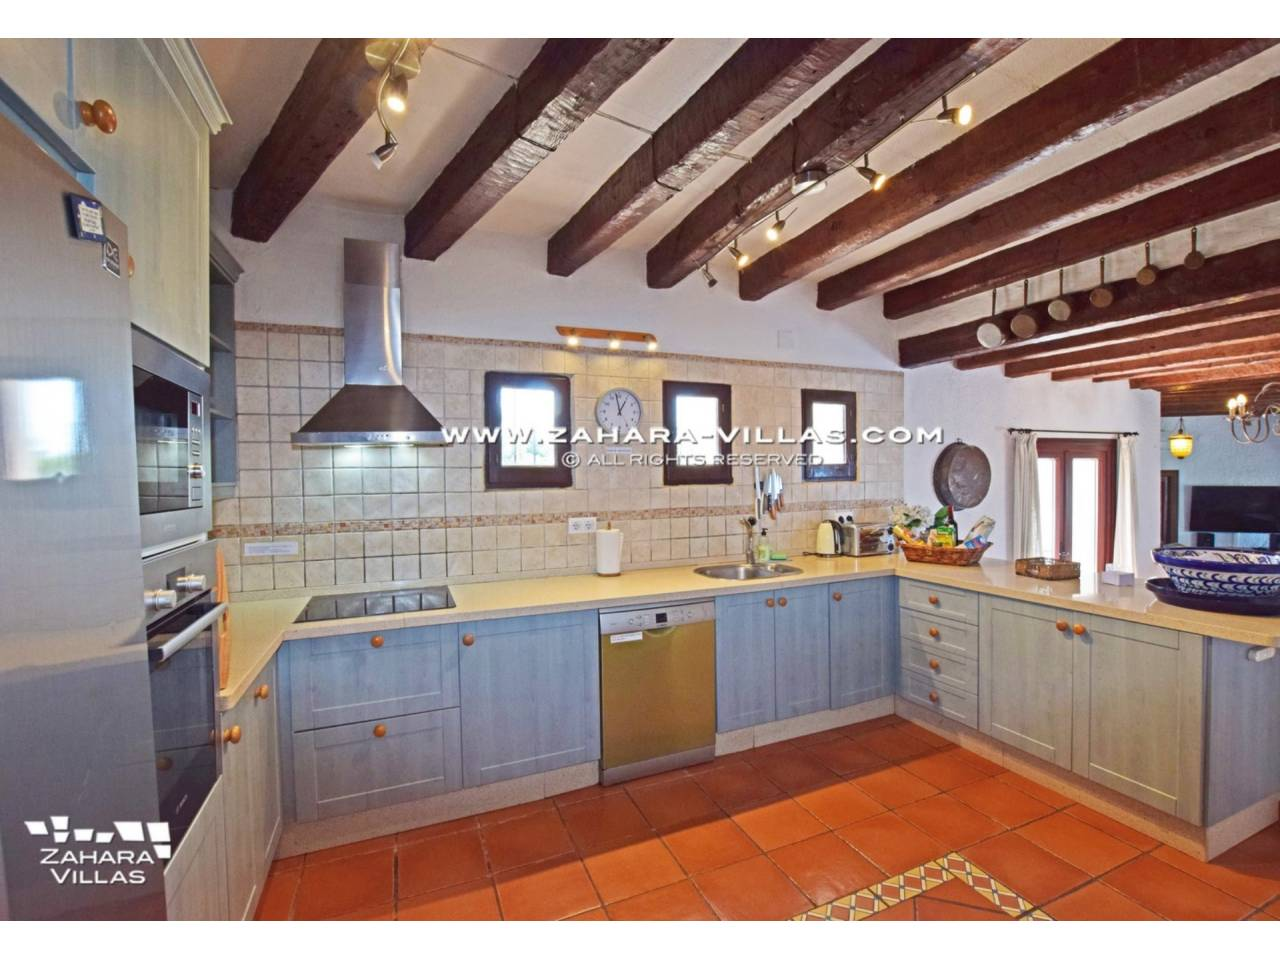 Imagen 25 de Wonderful Villa for sale in Atlanterra-Zahara de los Atunes